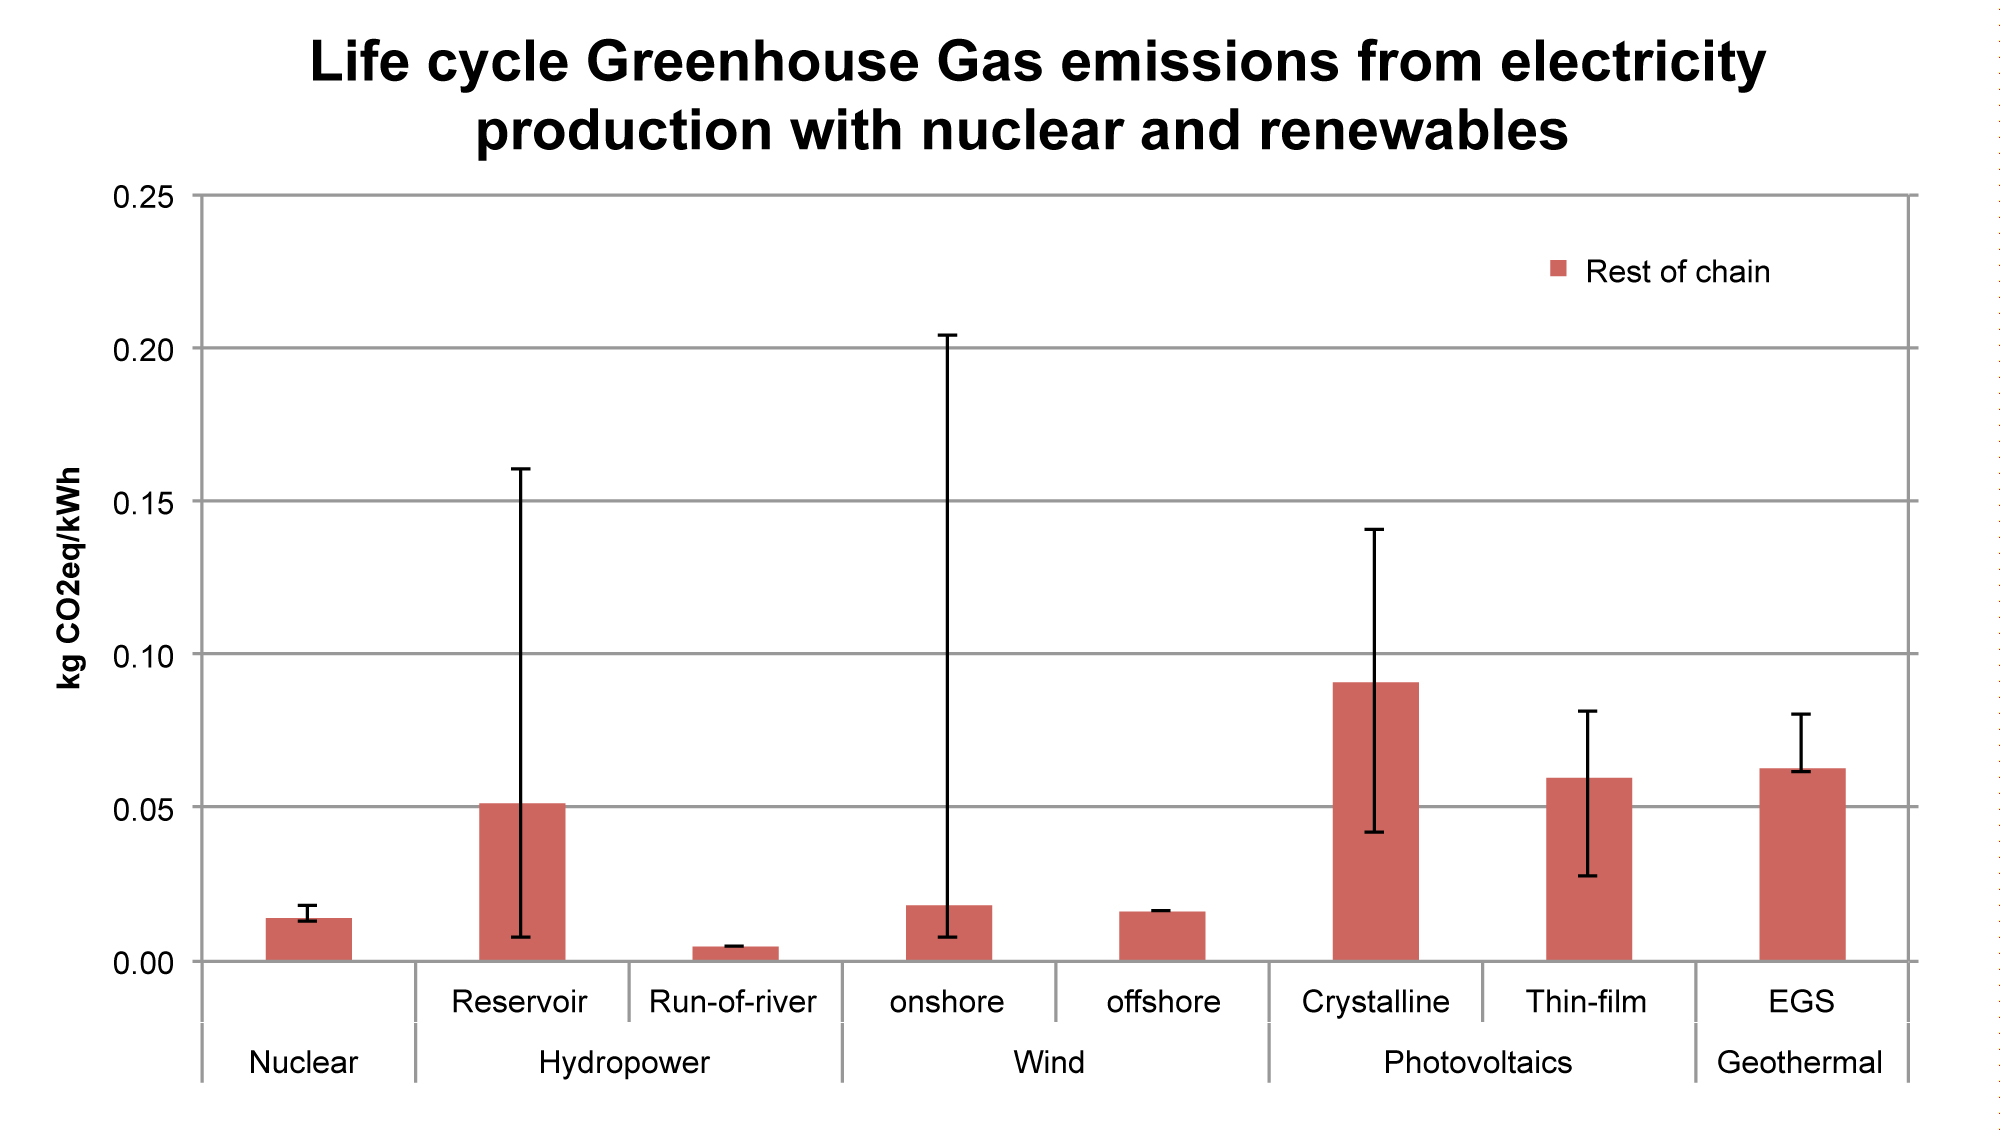 Life cycle (full chain) greenhouse gas emissions from electricity production with nuclear power and renewables. The line shows the range between minimum and maximum emissions of electricity production in all countries which produce electricity with a certain technology in ecoinvent. The variation between the single countries mainly origins from:  (Hydropower, reservoir): Plants at different locations, i.e. in different climate zones, (Wind): Different locations with different operation time due to different wind conditions, (Photovoltaics): Different locations with different electricity yield due to solar irradiation. These results from ecoinvent v3 are in line with literature. The figure also points out that in general, electricity production from renewables and nuclear power does not have direct emissions during the acutal production of the electricity.